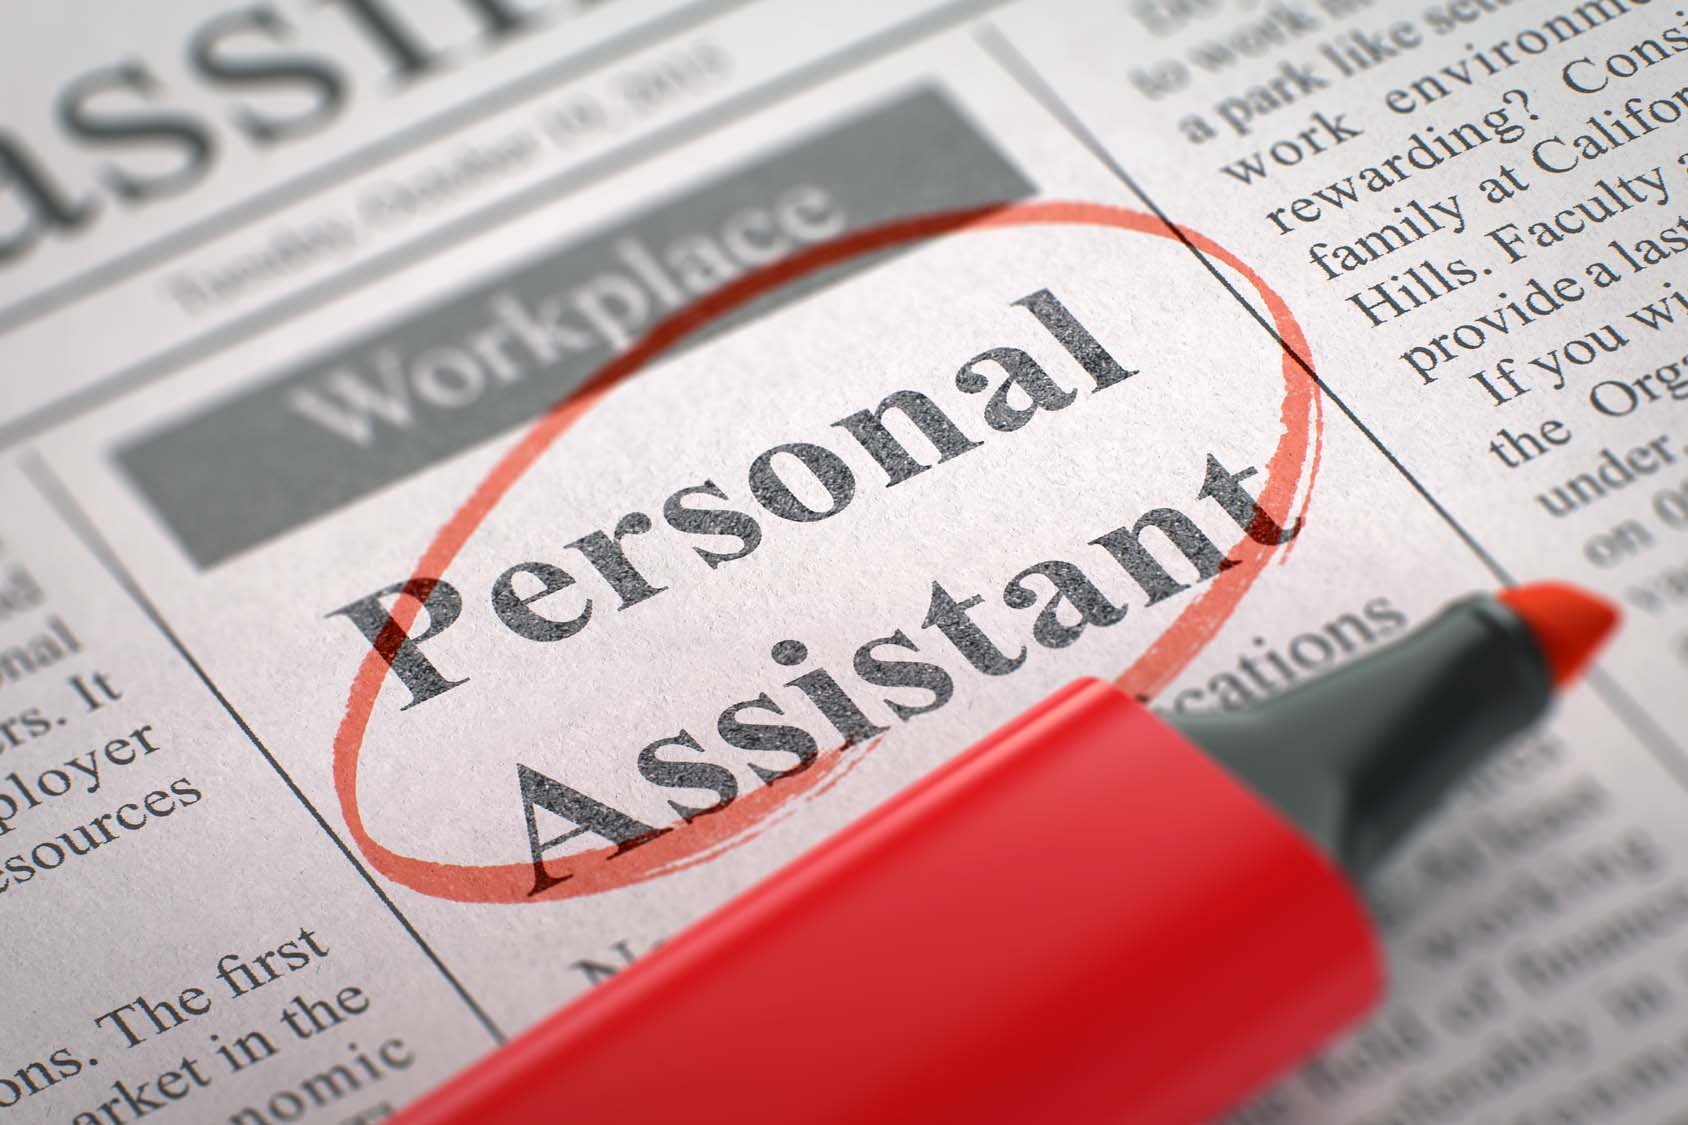 4 Types of Personal Assistants (2 of Which You Need To Avoid)